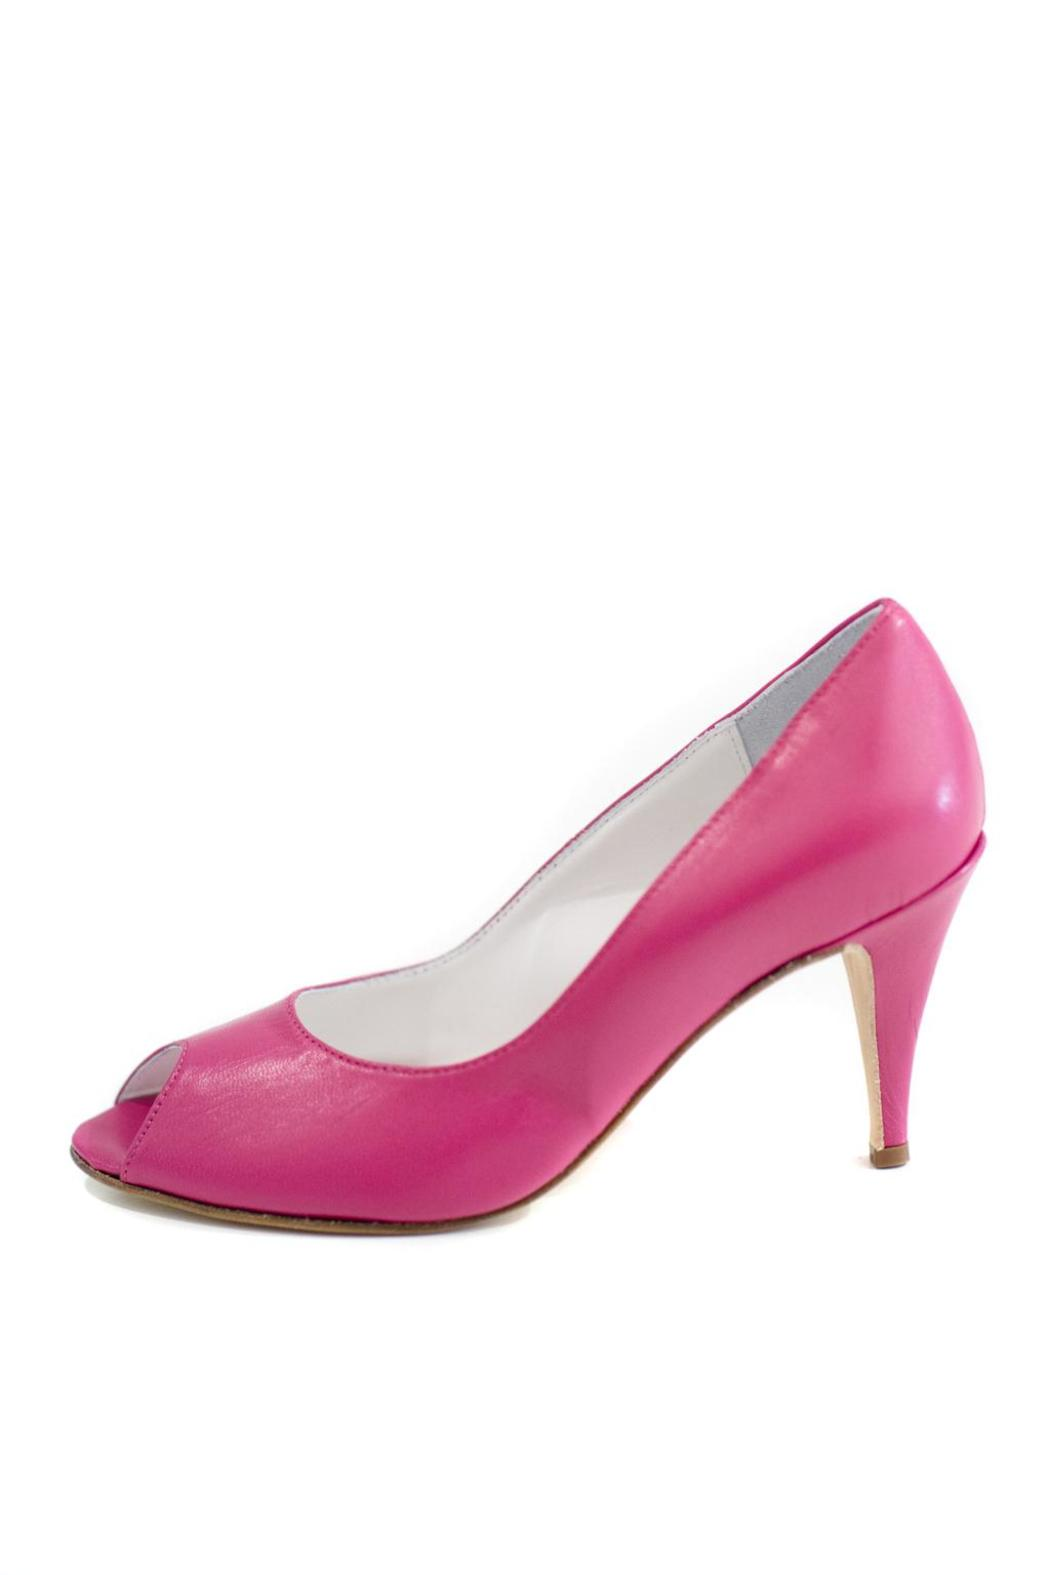 MARINA FERRANTI Hot Pink Leather Stiletto Pump - Front Cropped Image